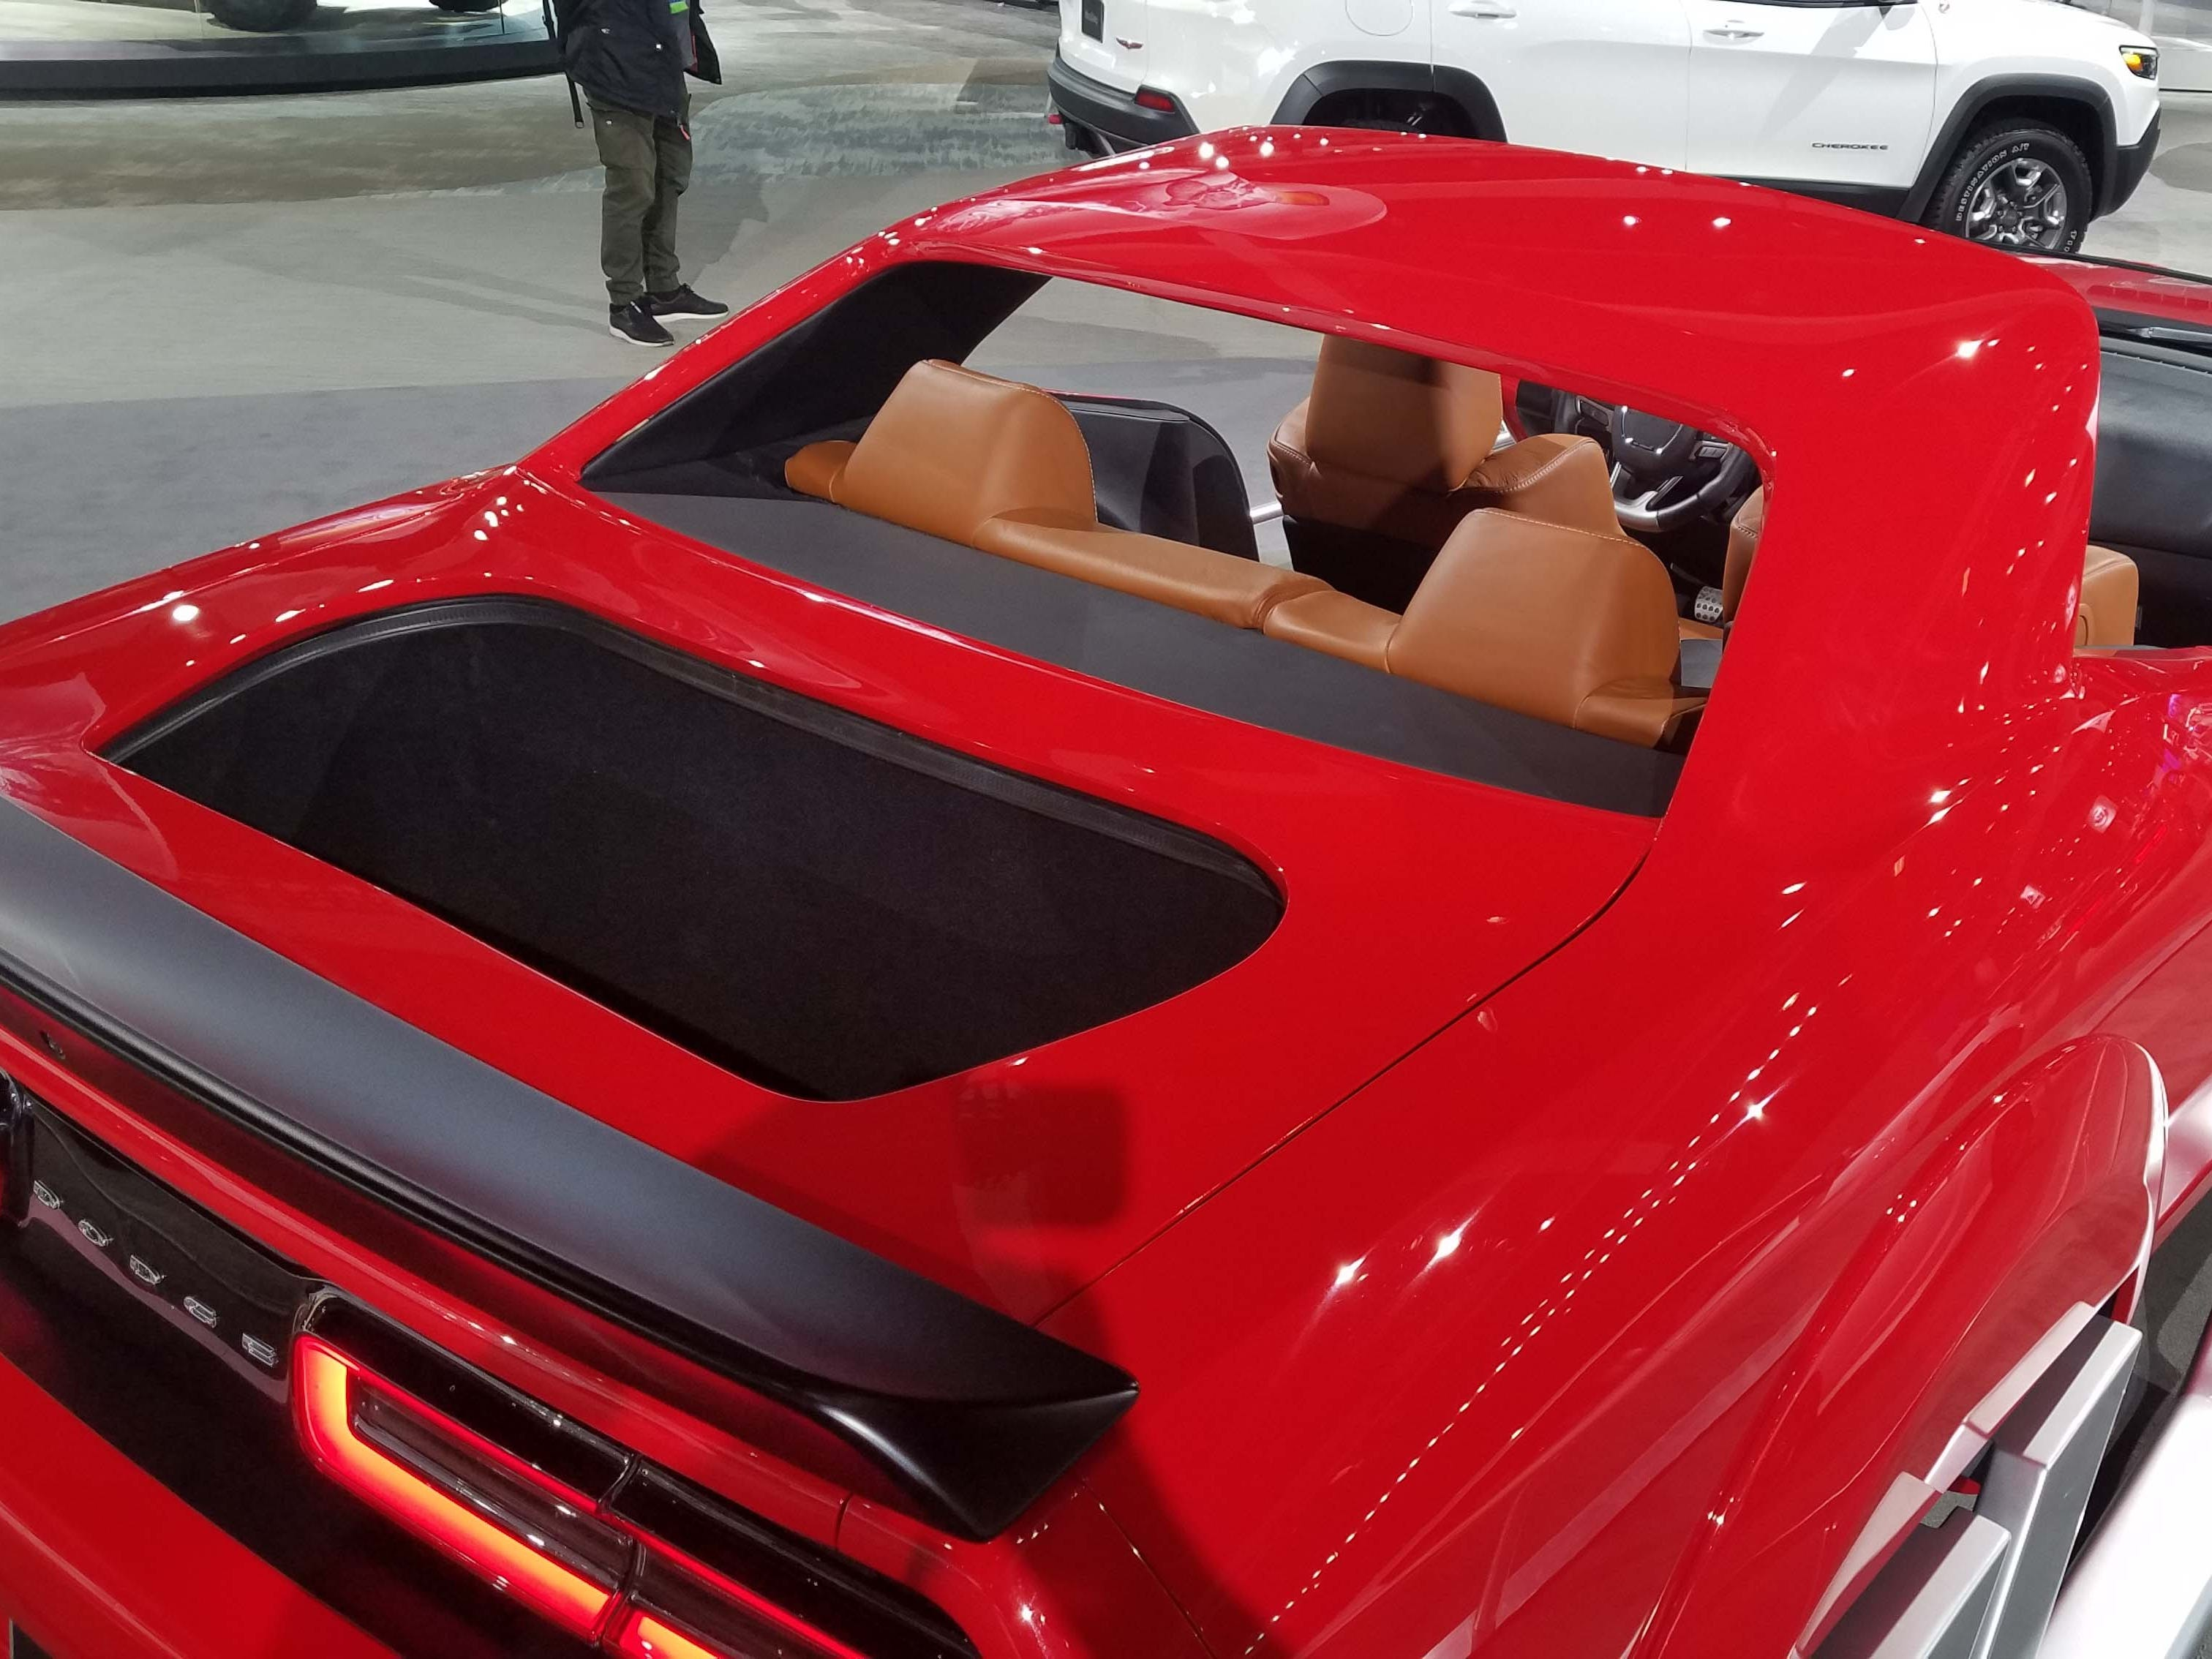 A trunk hole for Santa's bag. The Dodge Challenger Hellcat Redeye sleigh.